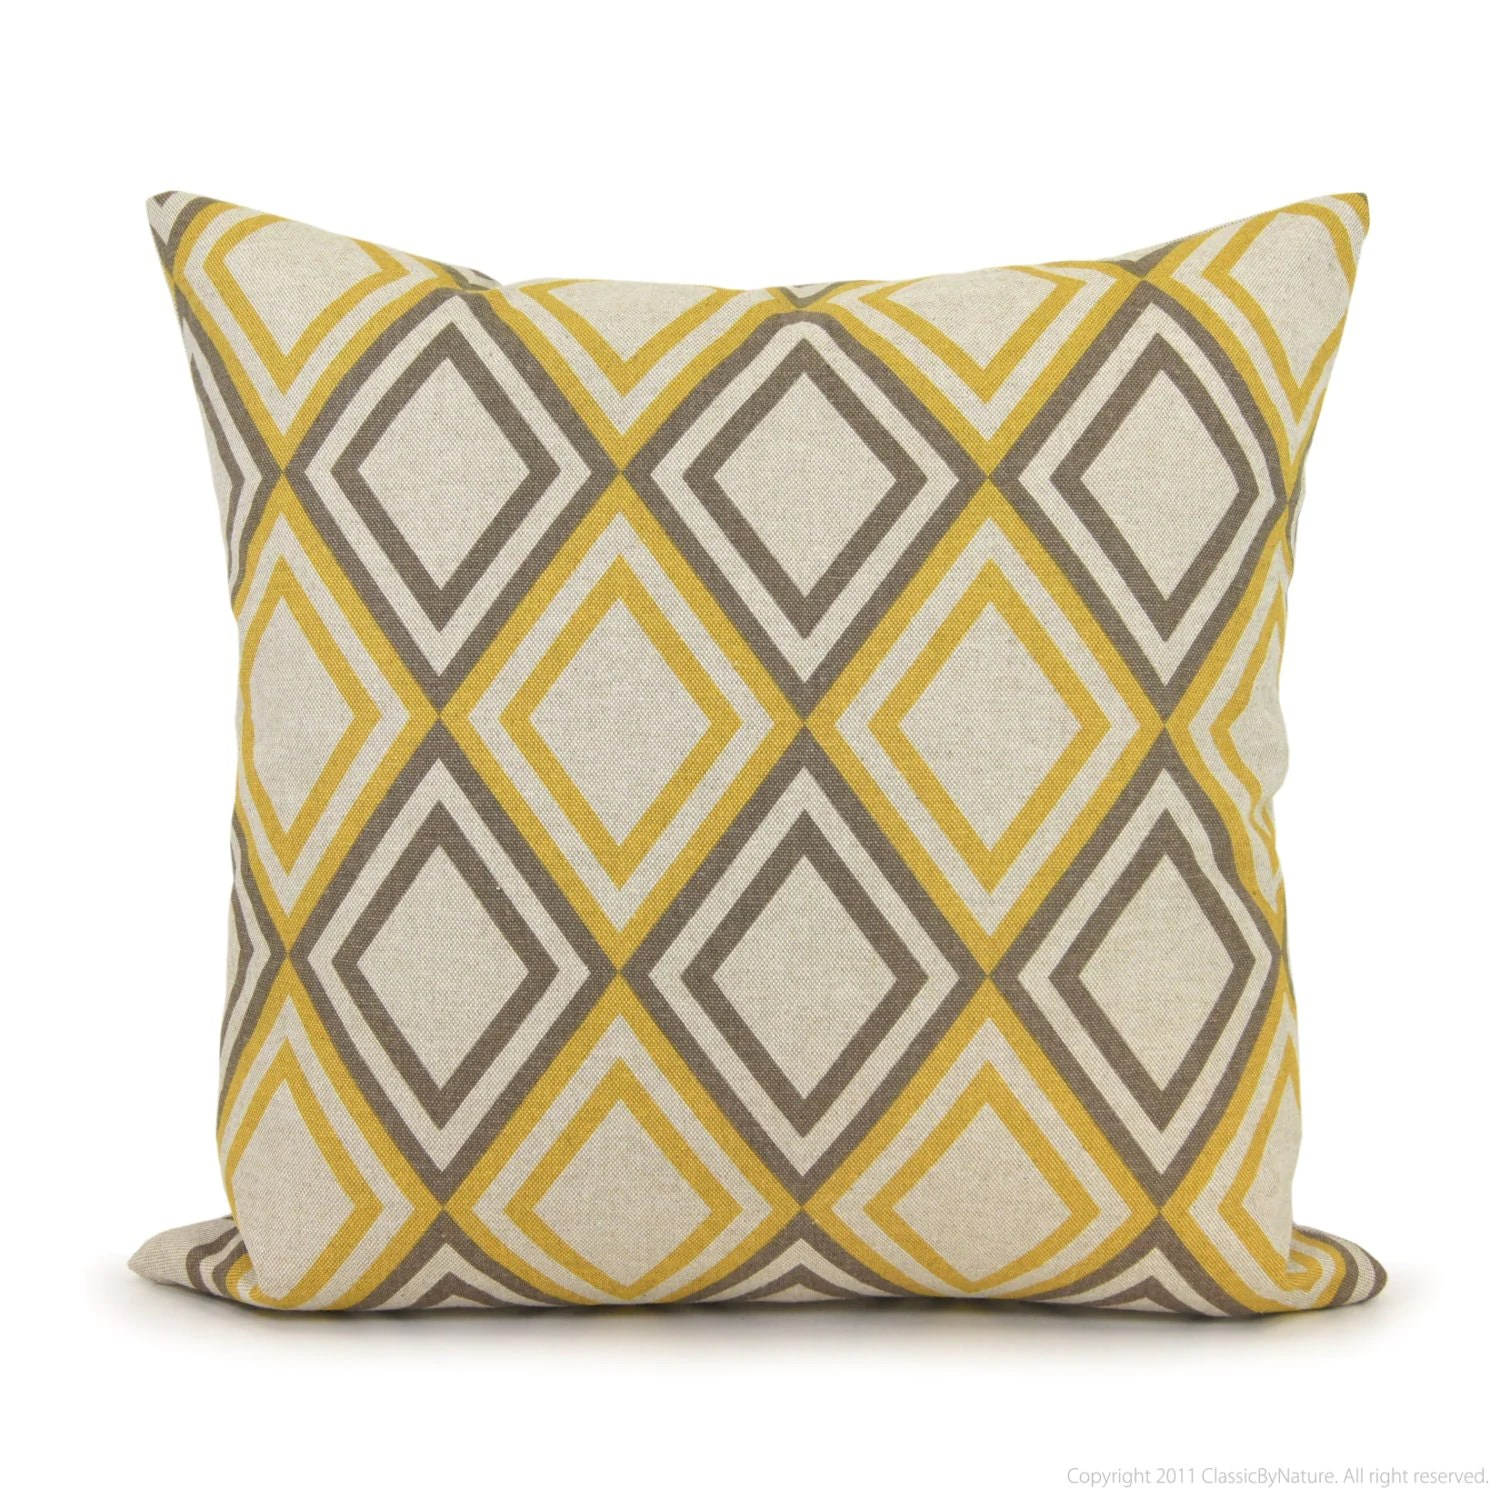 Throw Pillow Covers Jysk : Geometric pillow cover ? 18?18 pillow cover ? Gray and yellow decorative pillow cover ? Modern ...